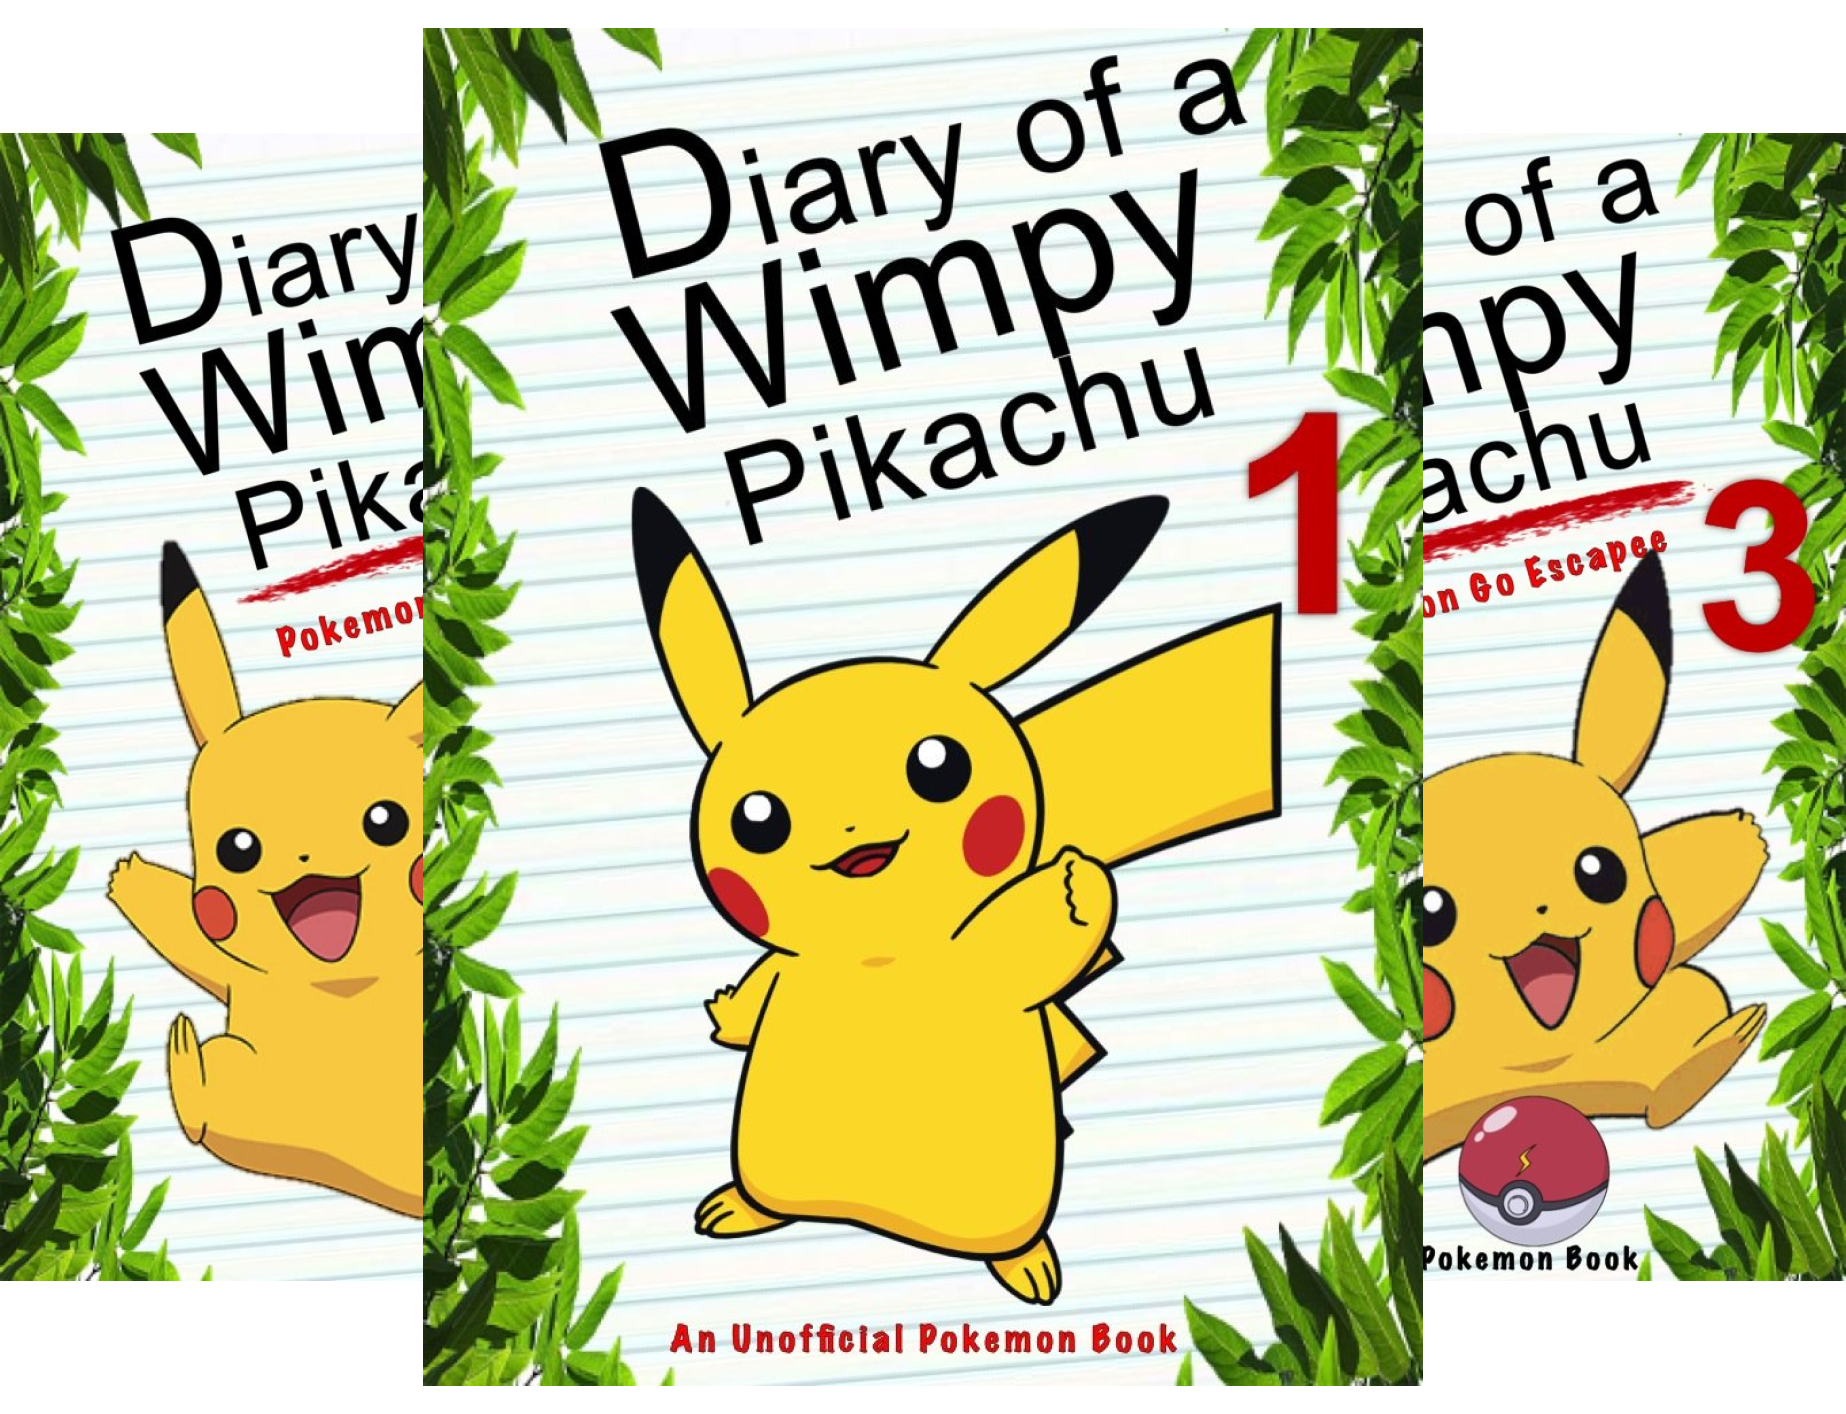 Diary of a Wimpy Pikachu (15 Book Series)